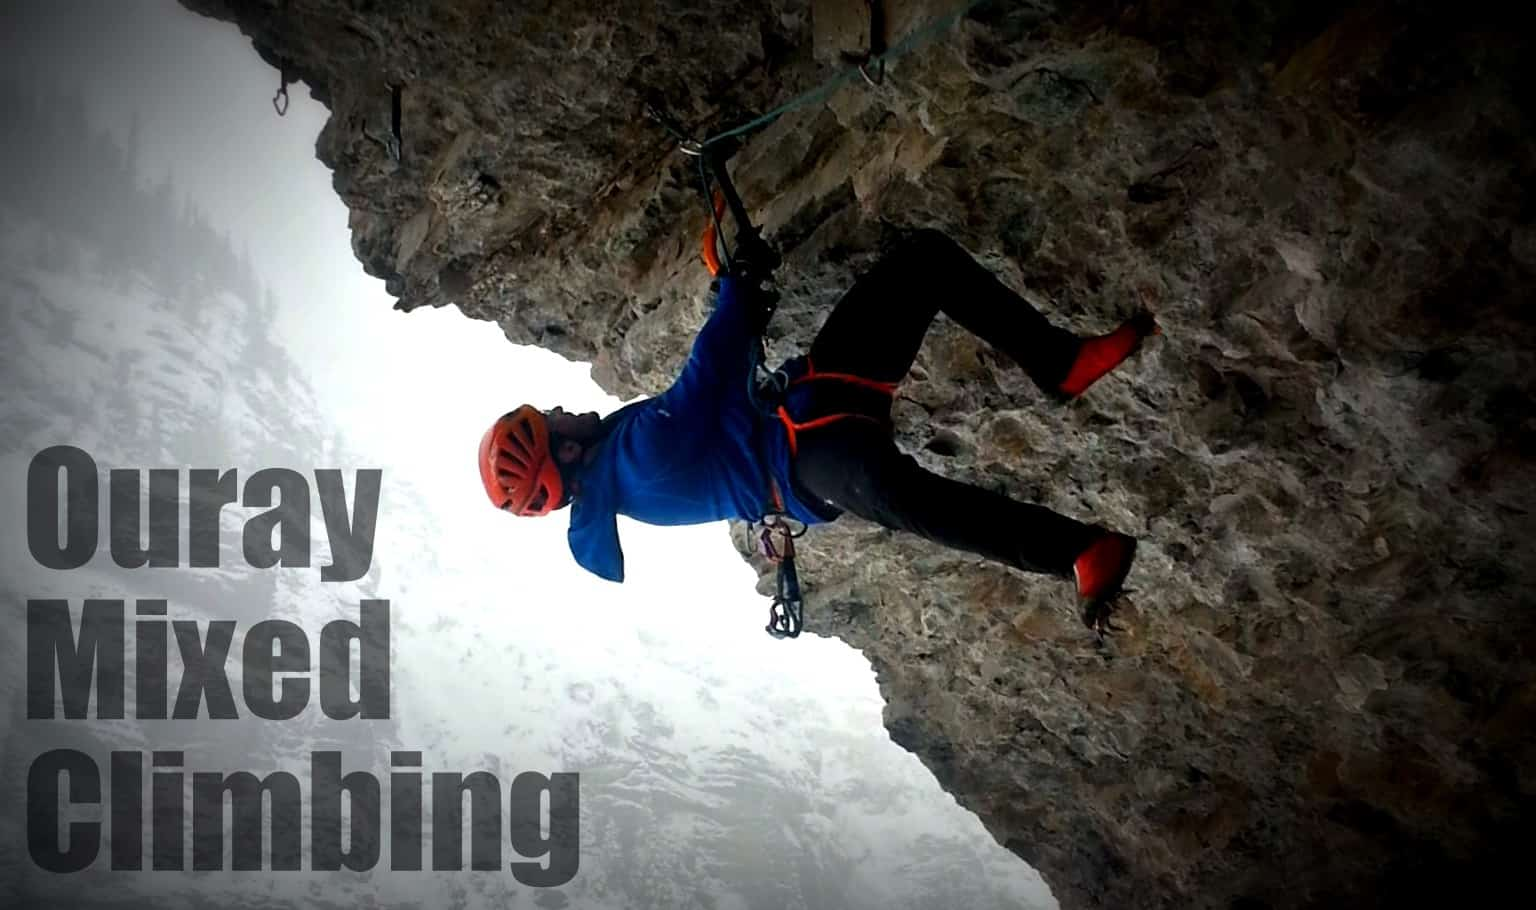 Ouray Mixed Climbing